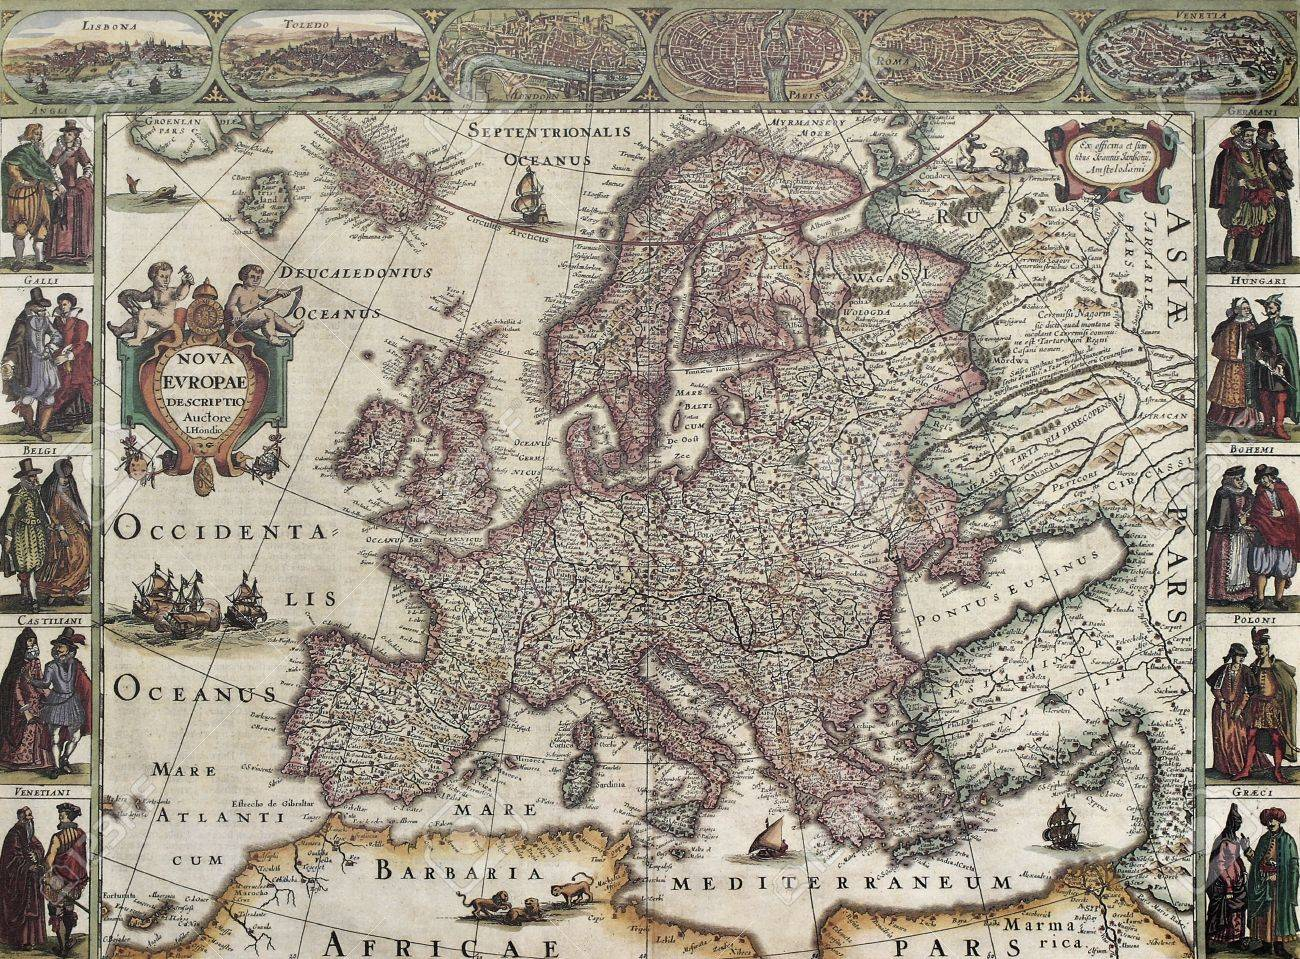 Europa Old Map Created By Henricus Hondius Published In Amsterdam - Amsterdam old map